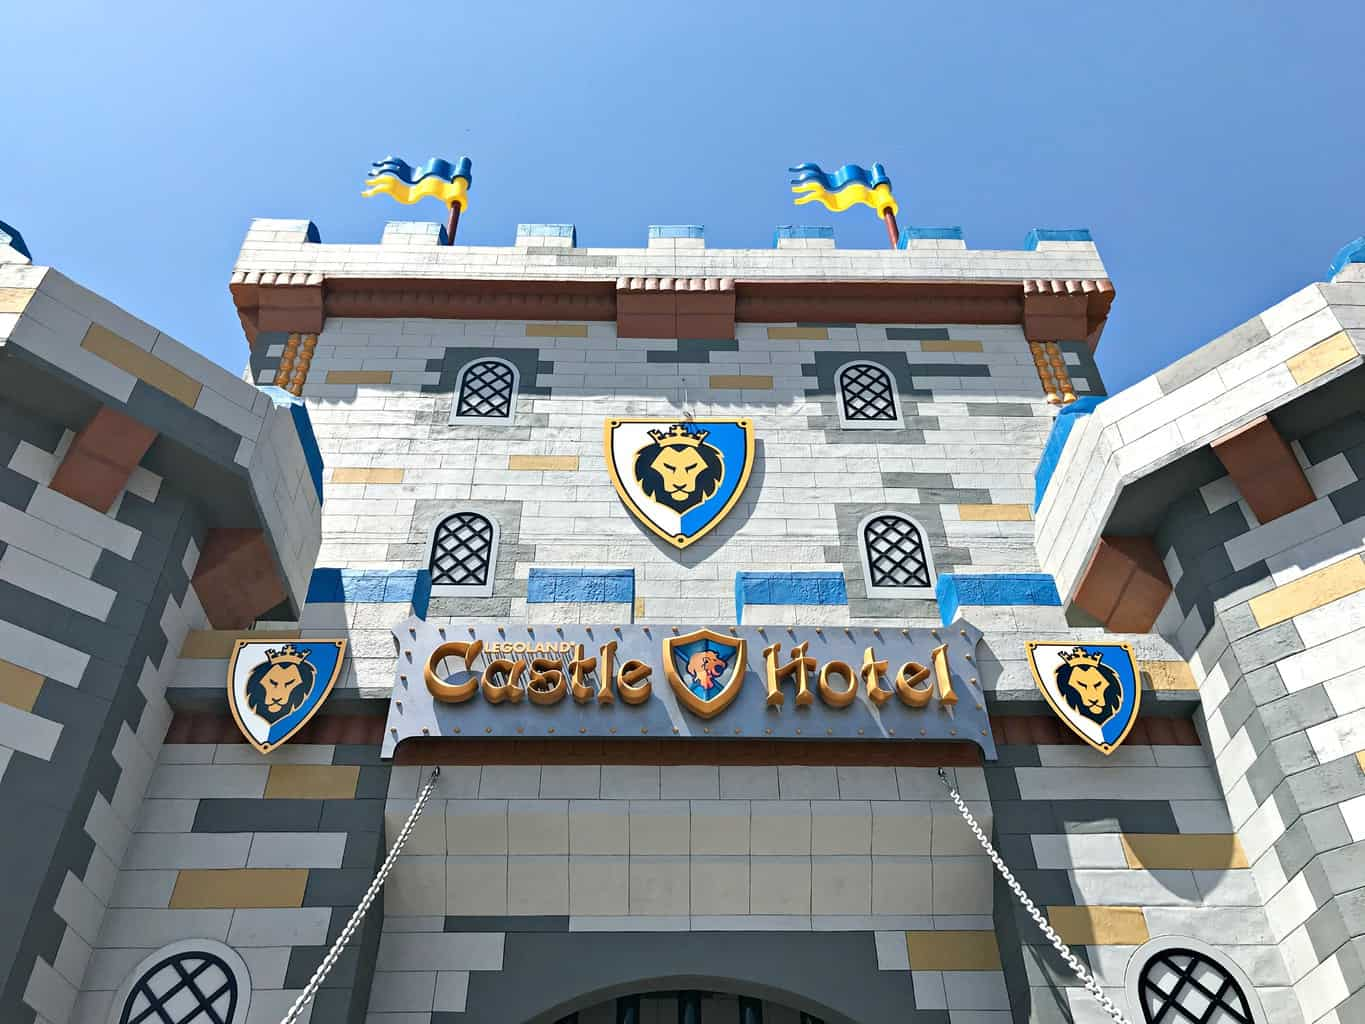 Hotel entrance to the Legoland Castle Hotel Carlsbad